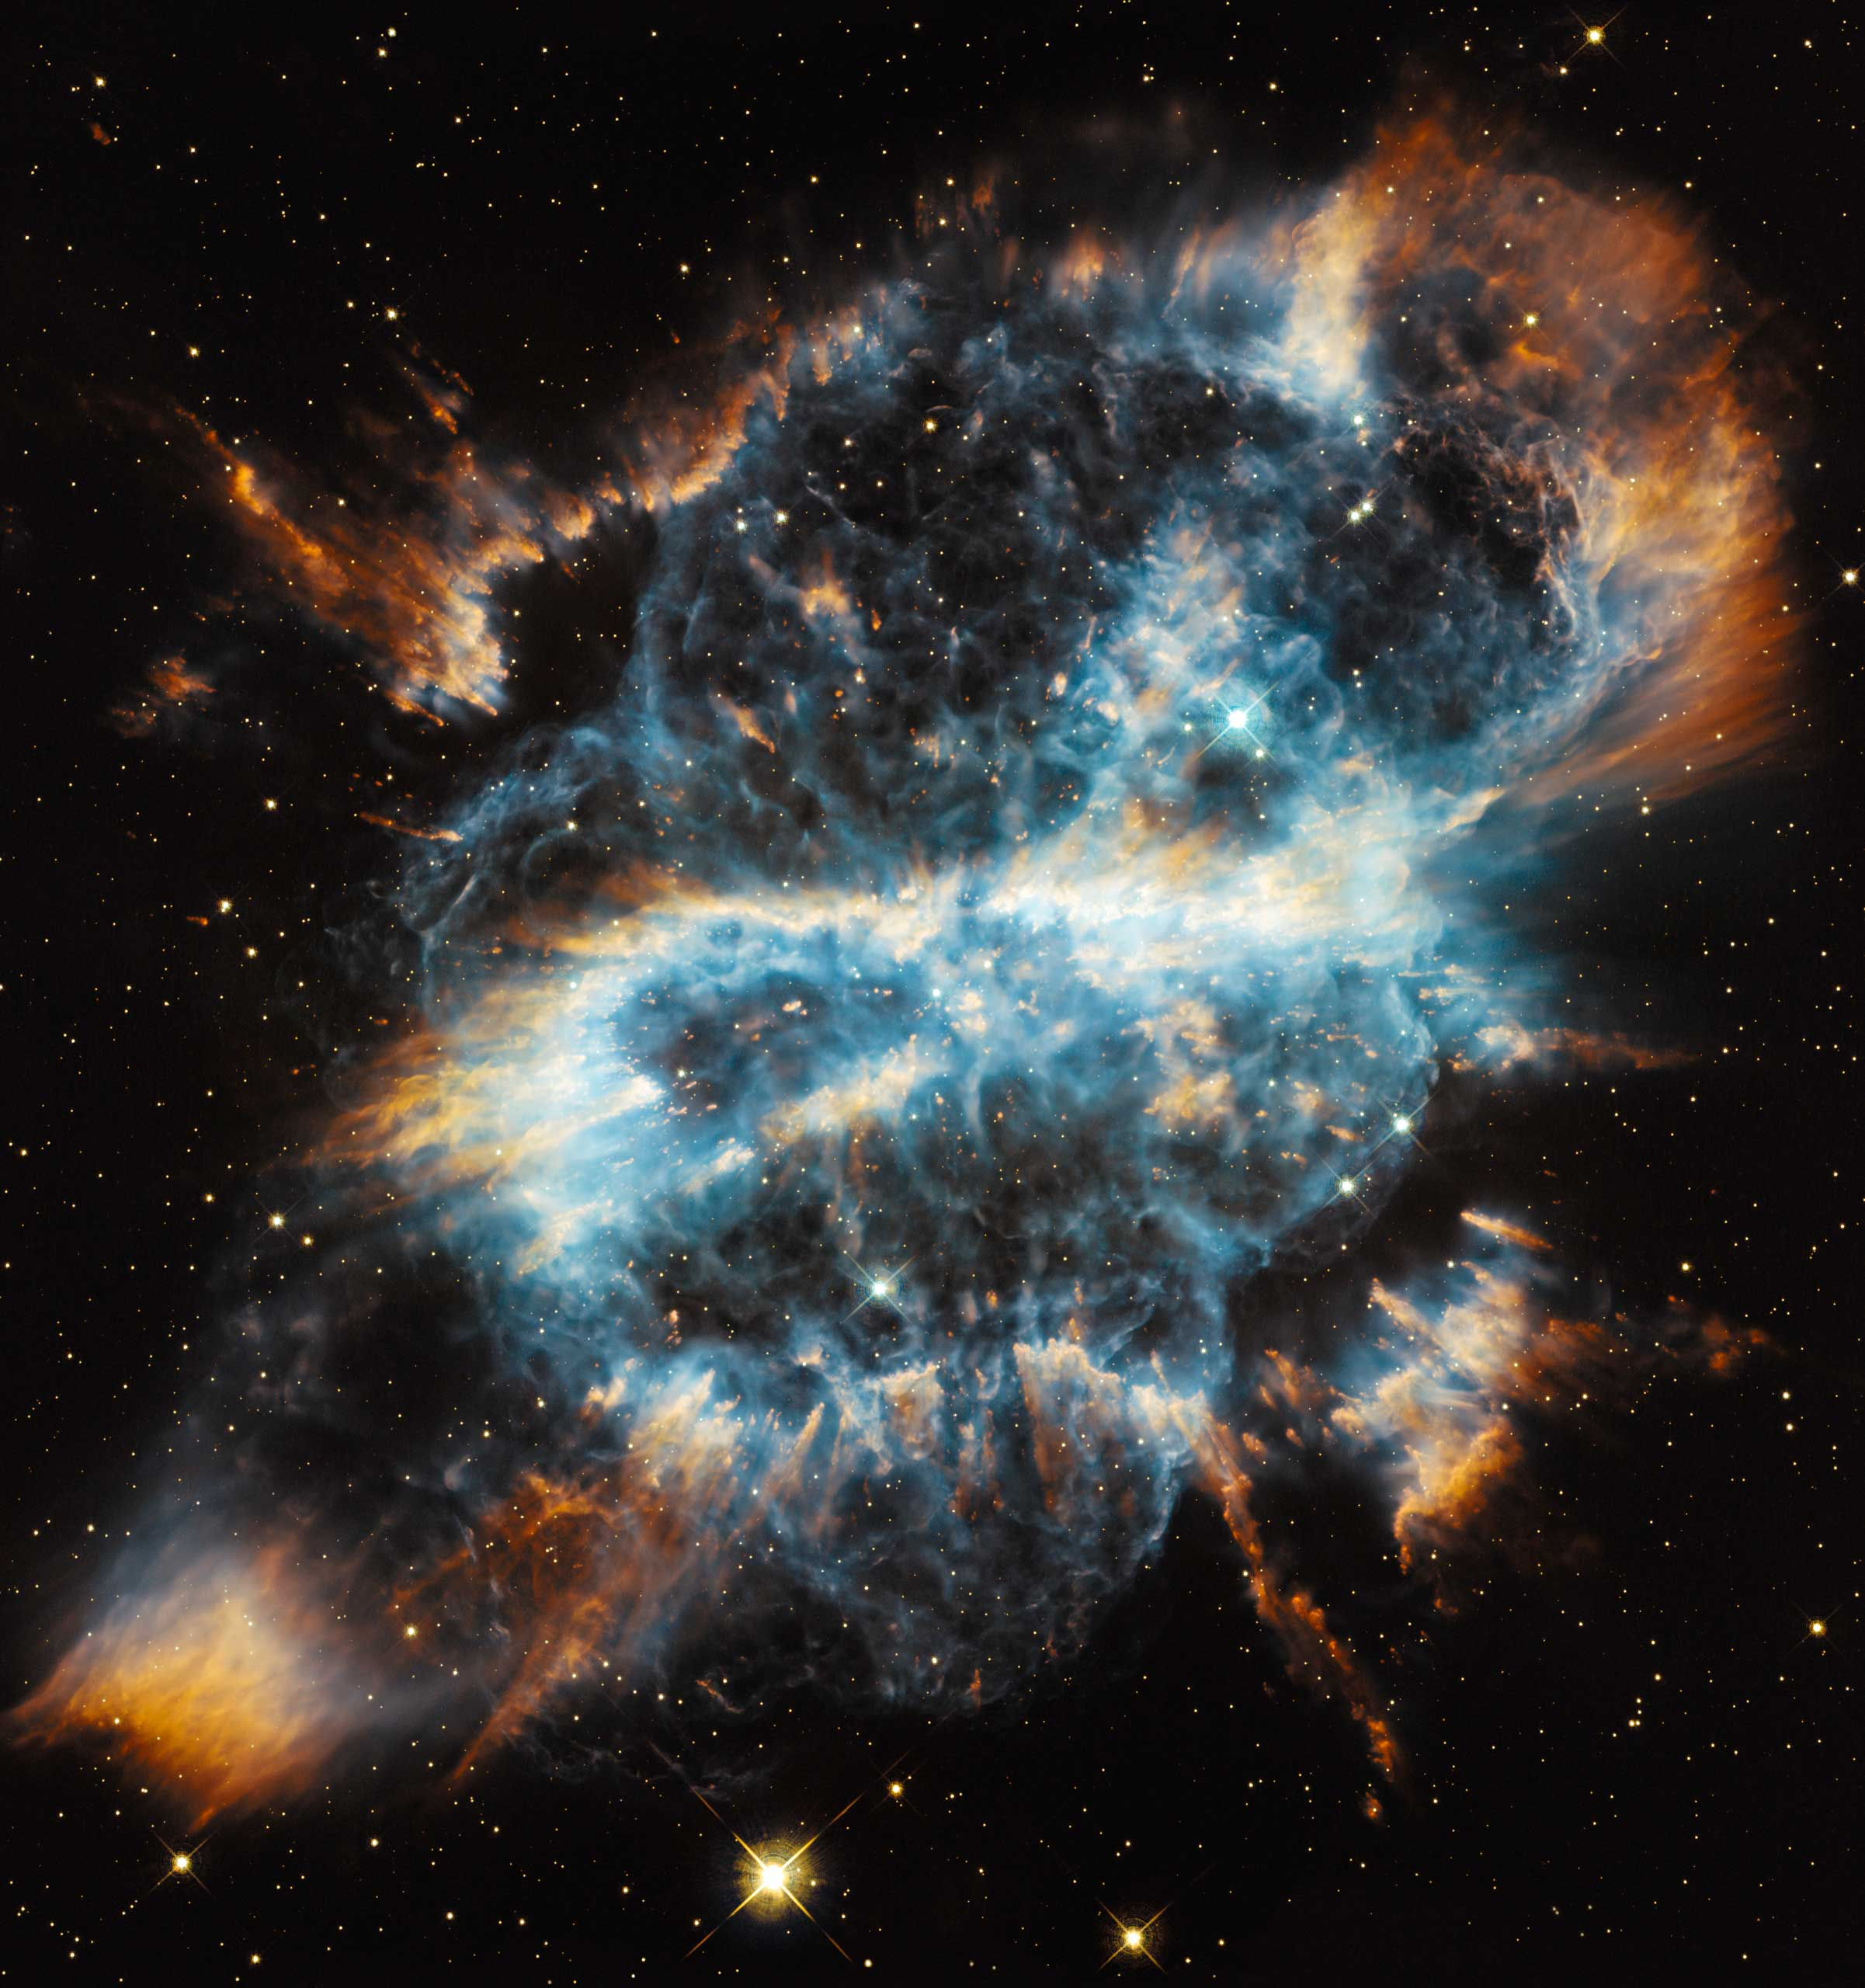 <strong>Planetary Nebula NGC 5189</strong>:                                                                      The nebula is located 1,800 light-years away in the southern constellation Musca. Hubble's image is the most detailed yet made of this object. Its double bipolar or quadrupolar structure could be explained by the presence of a second star orbiting the central star and influencing the pattern of mass ejection.                                                                      <i>Image released on Dec. 18, 2012</i>